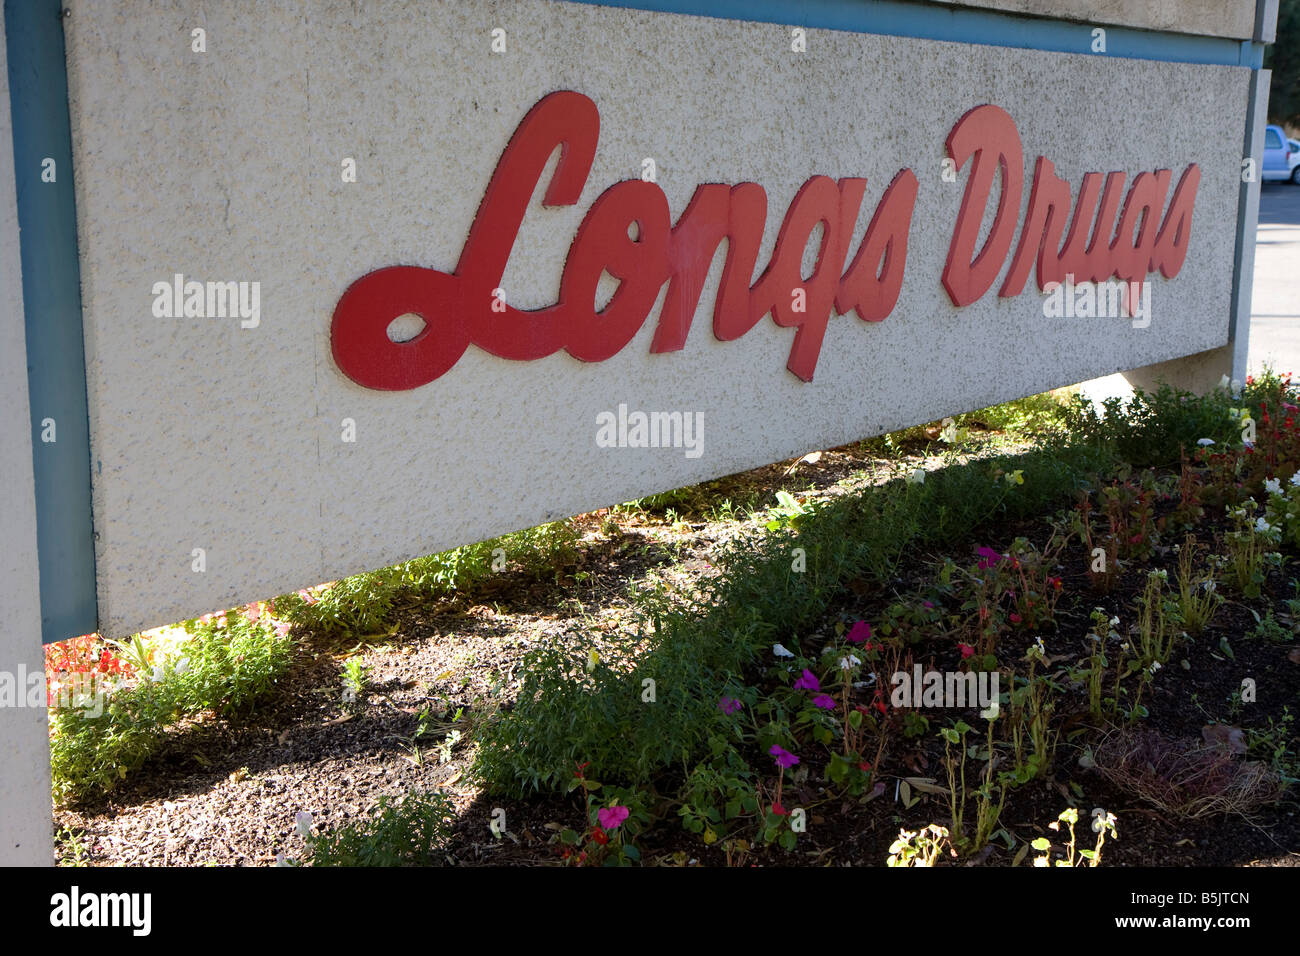 Sign depicting 'Longs Drugs' (LDG) in front of a store in San Jose, California.  Longs is looking to be - Stock Image